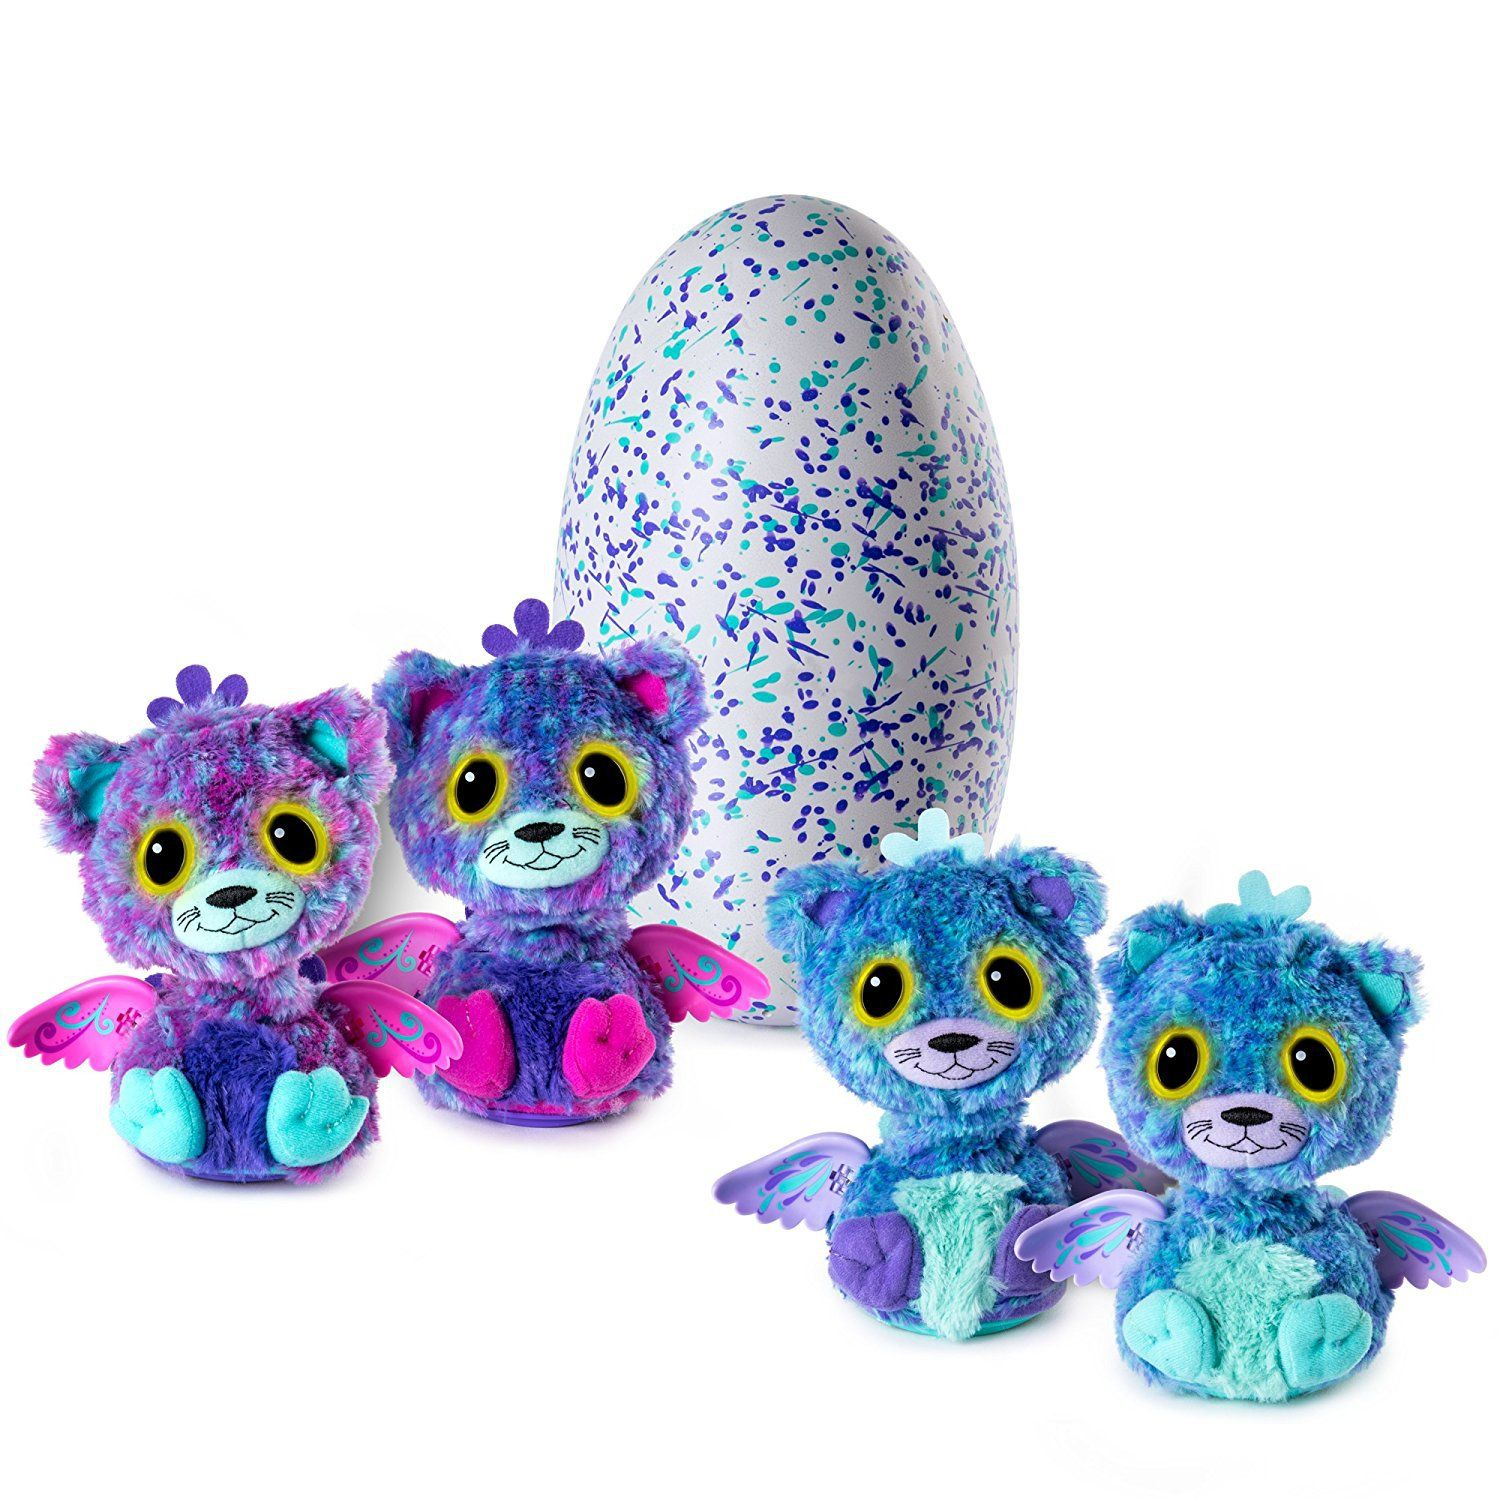 The Best Christmas Gifts For Girls Ages 5 10 Army Wife With Daughters Hatchimals Hot Toys Toy Store